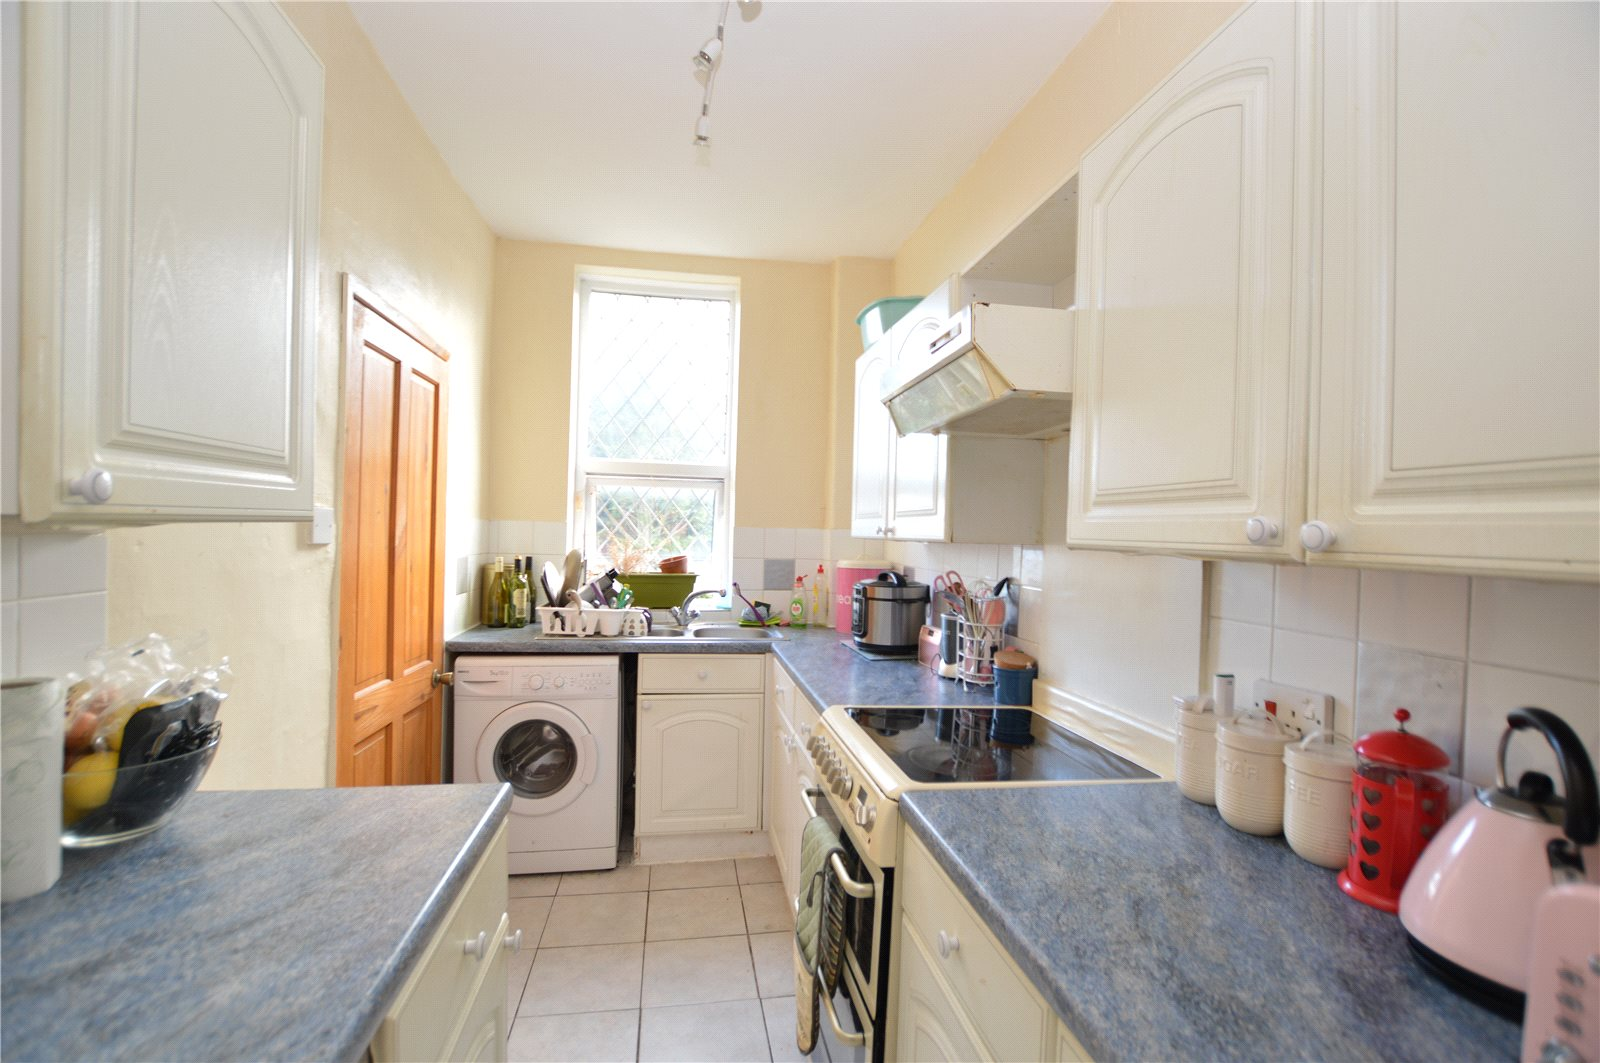 Property for sale in Morley, interior gallery kitchen